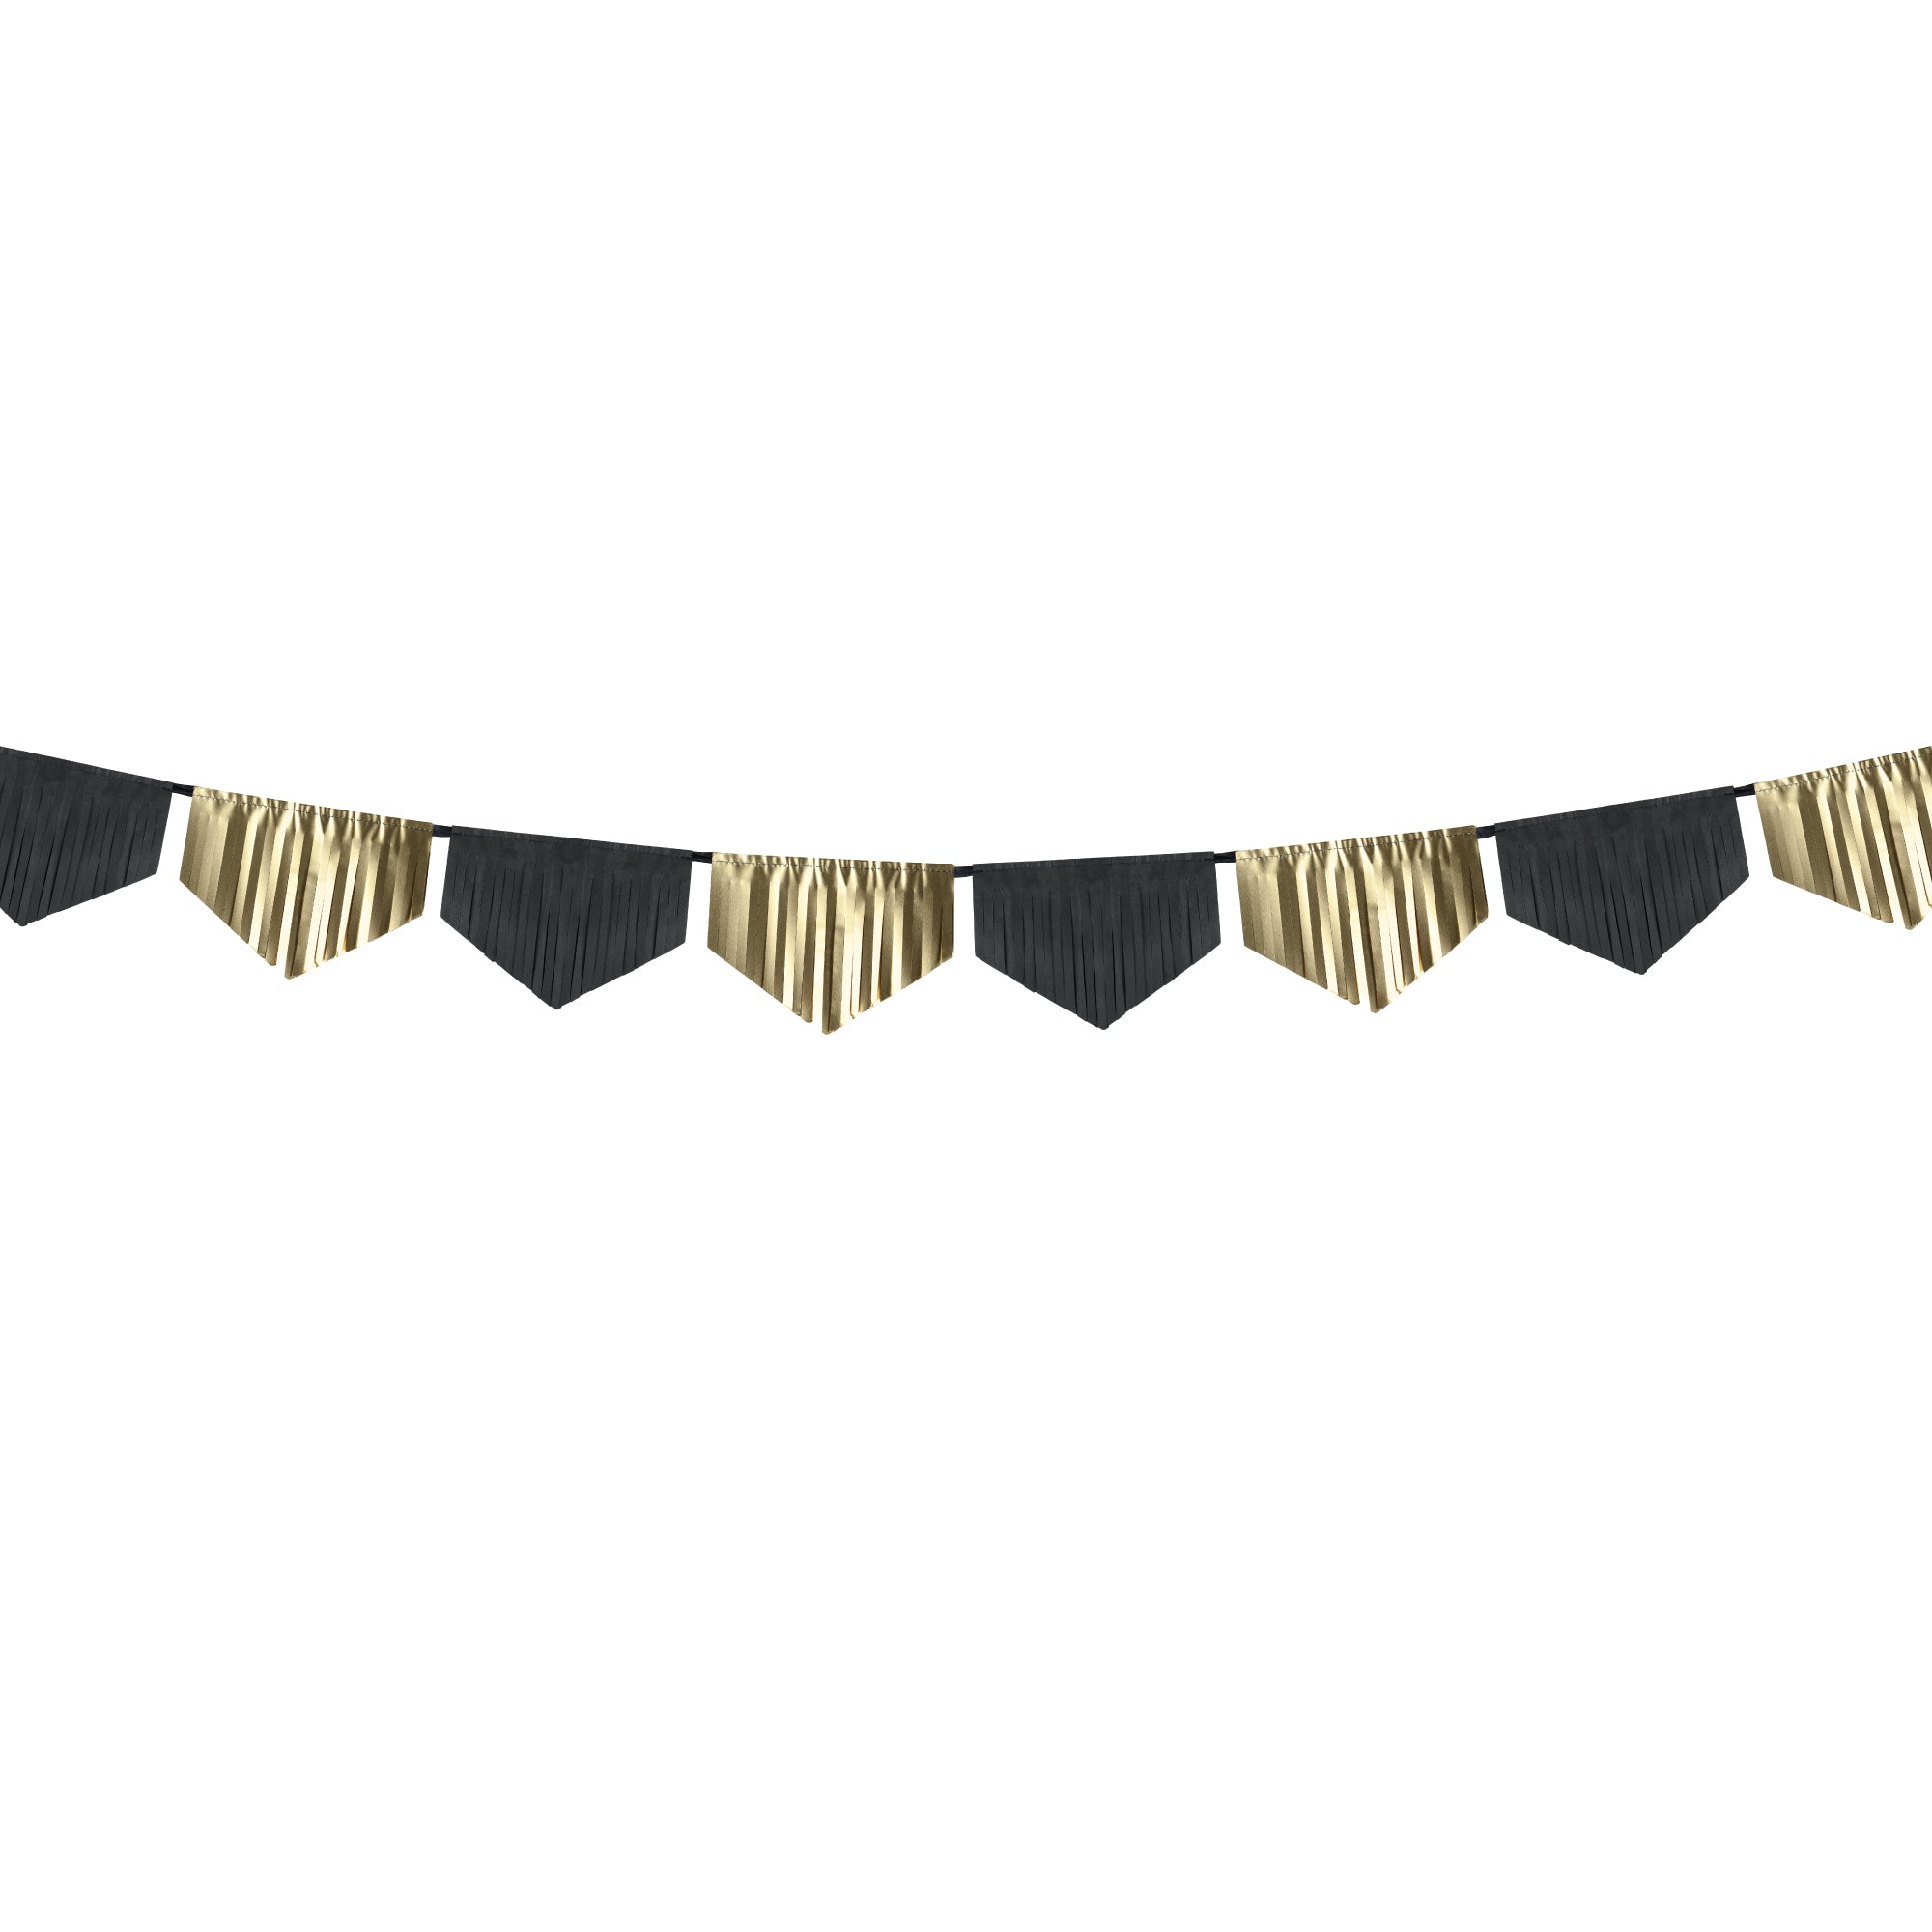 Black & Gold Fringe Garland